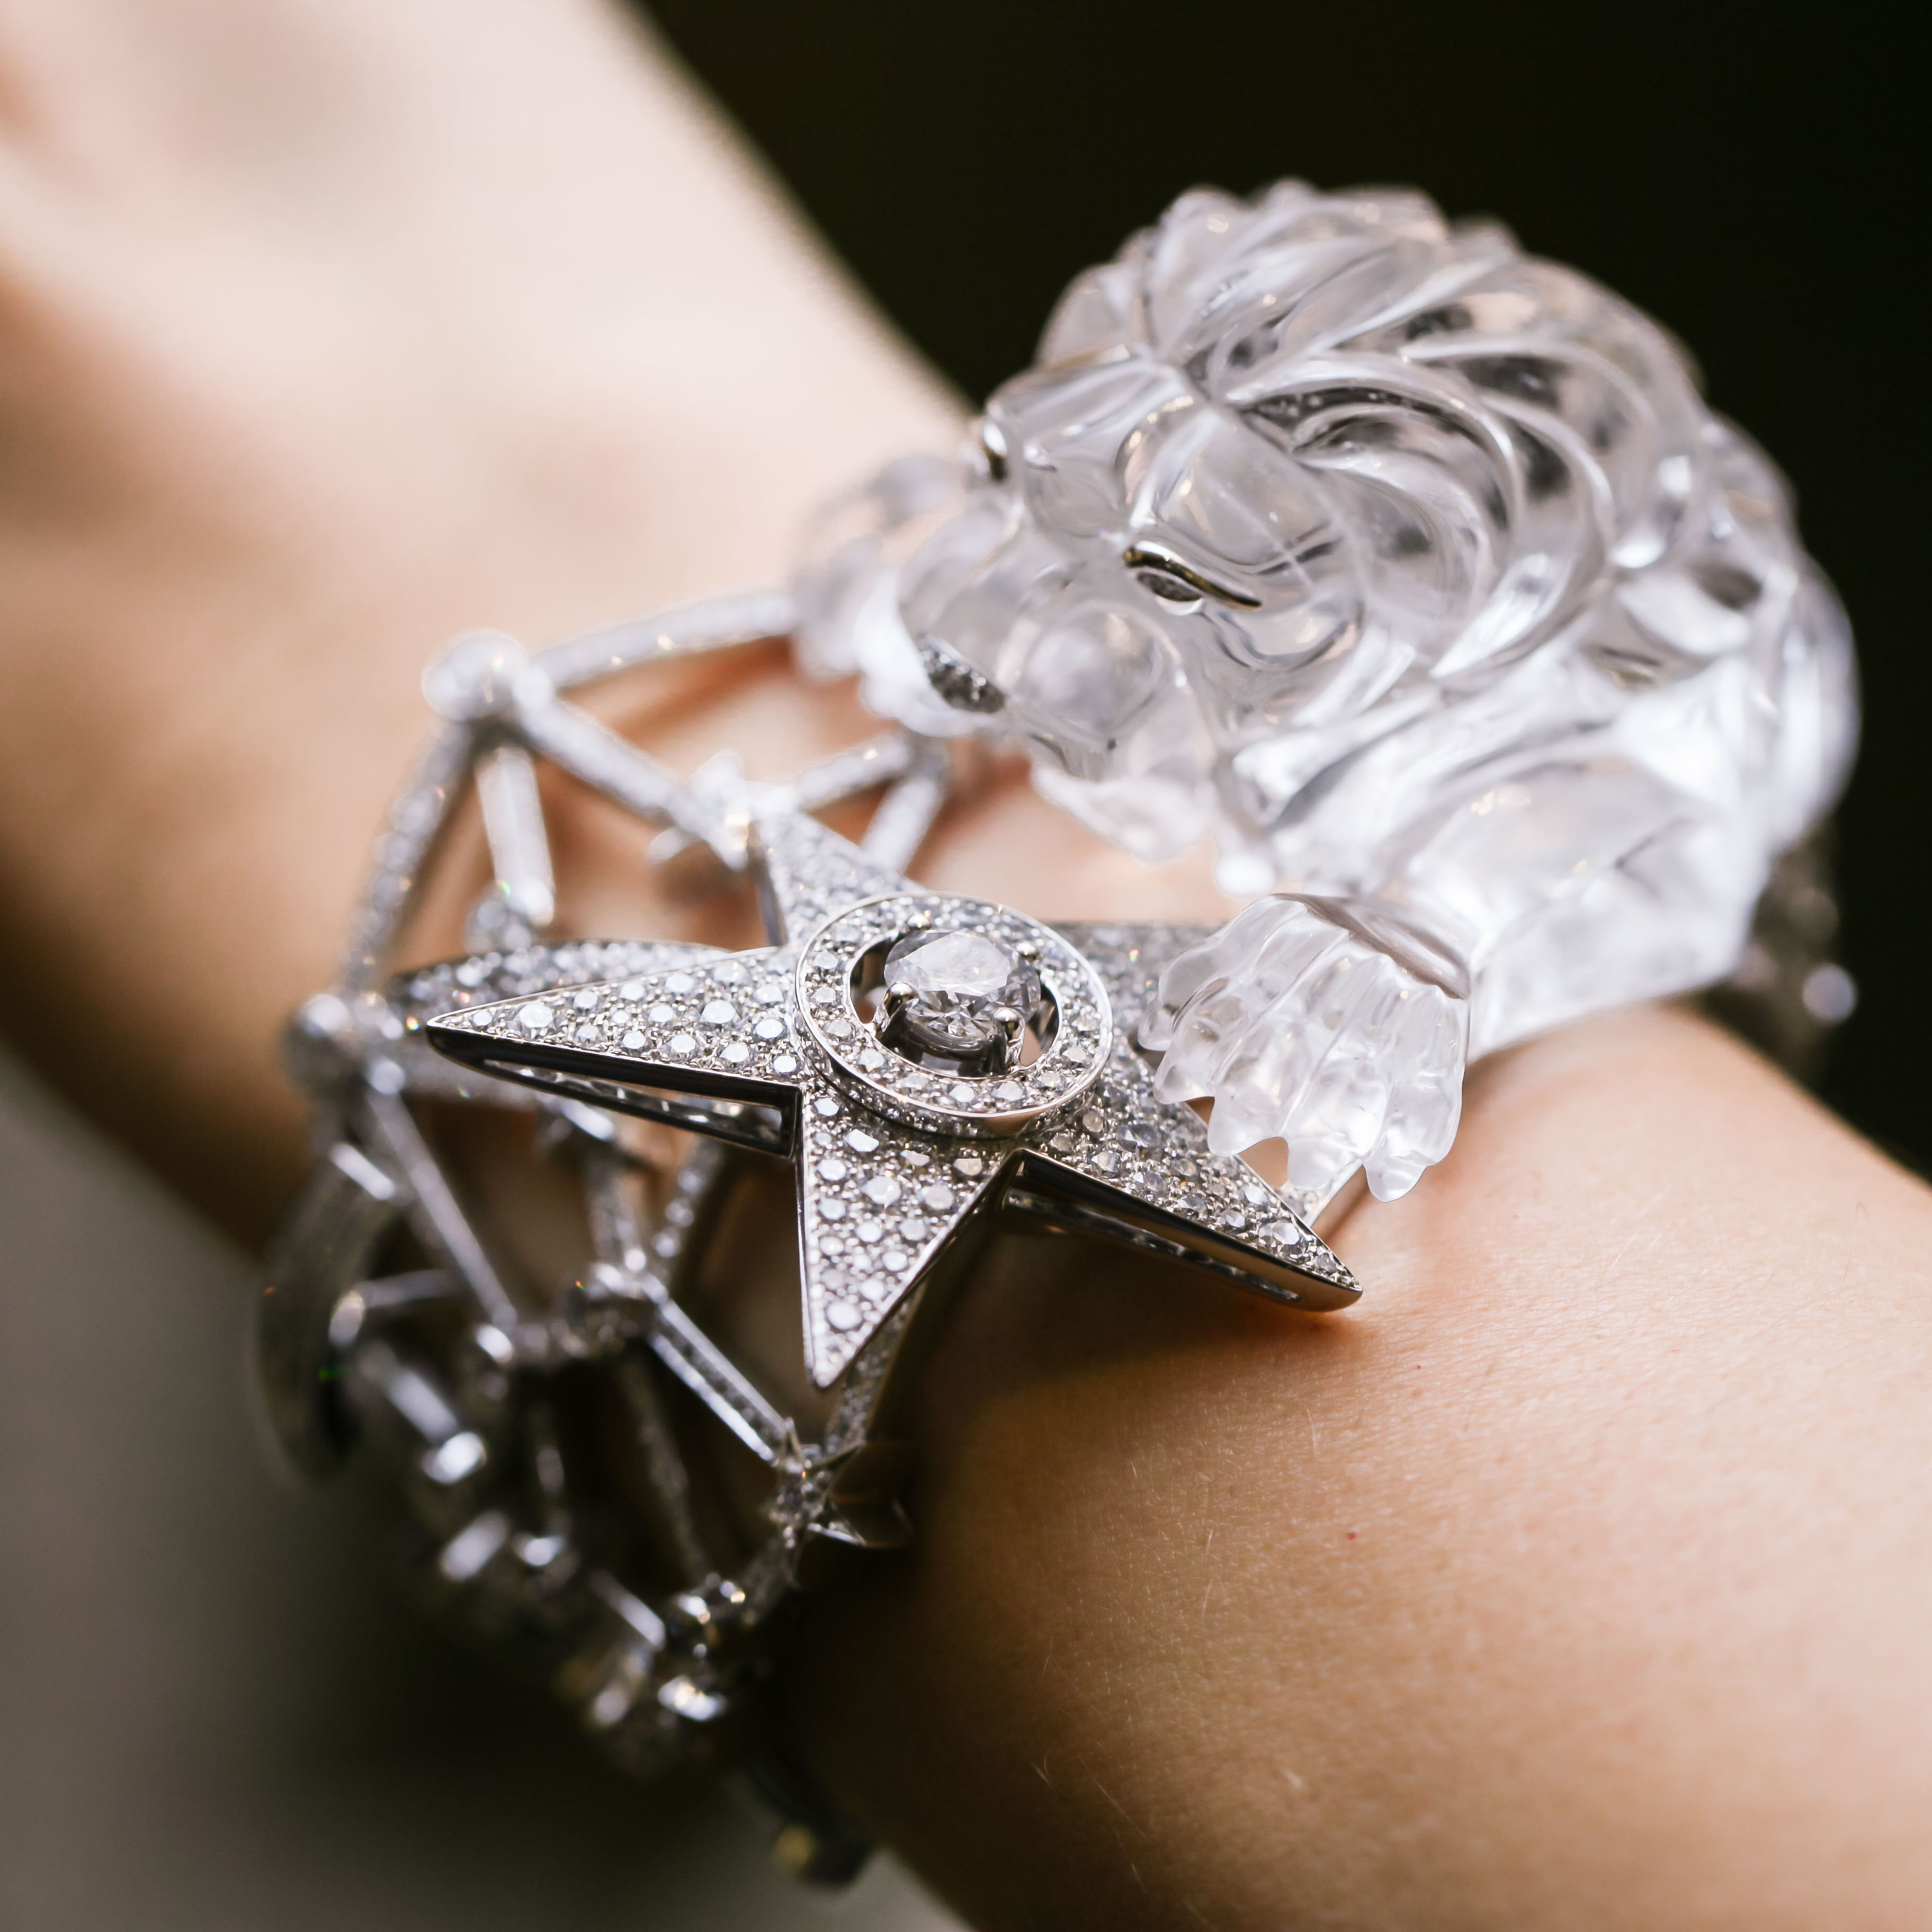 CHANEL HIGH JEWELLERY: THE COCO CHANEL RENAISSANCE